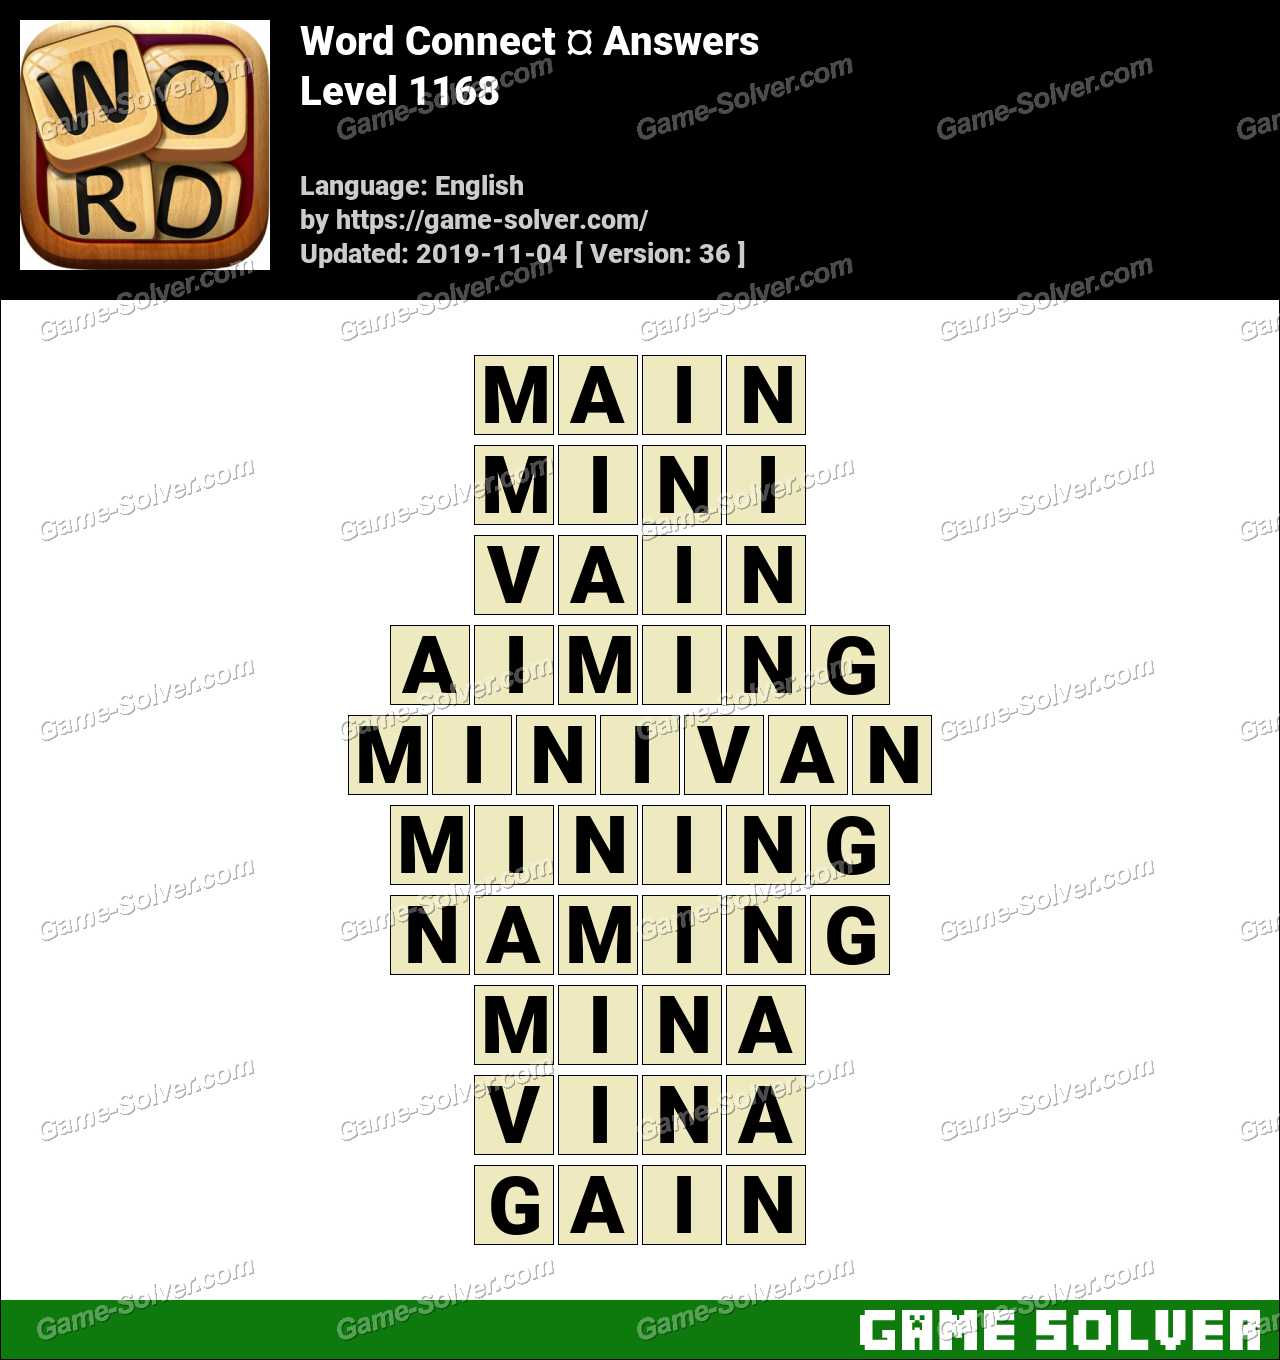 Word Connect Level 1168 Answers